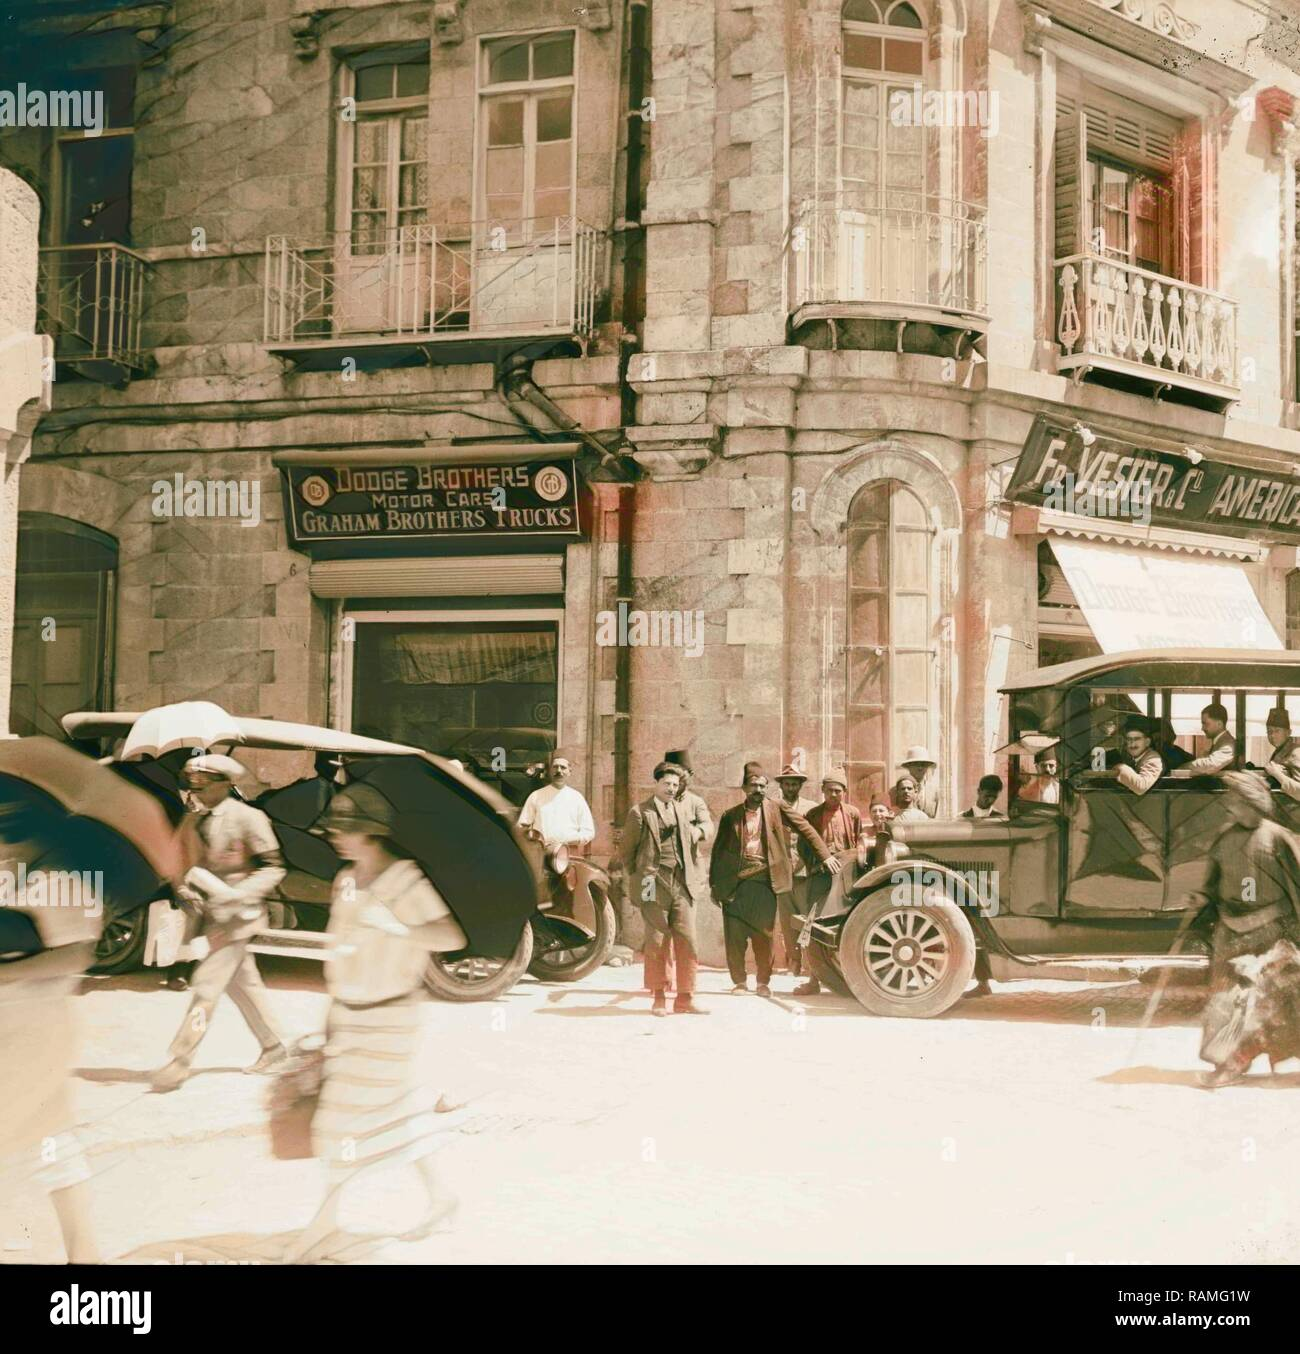 Corner of Grand Hotel showing American Colony stores and Dodge auto business (one of Am. Colony enterprises). 1920 reimagined - Stock Image